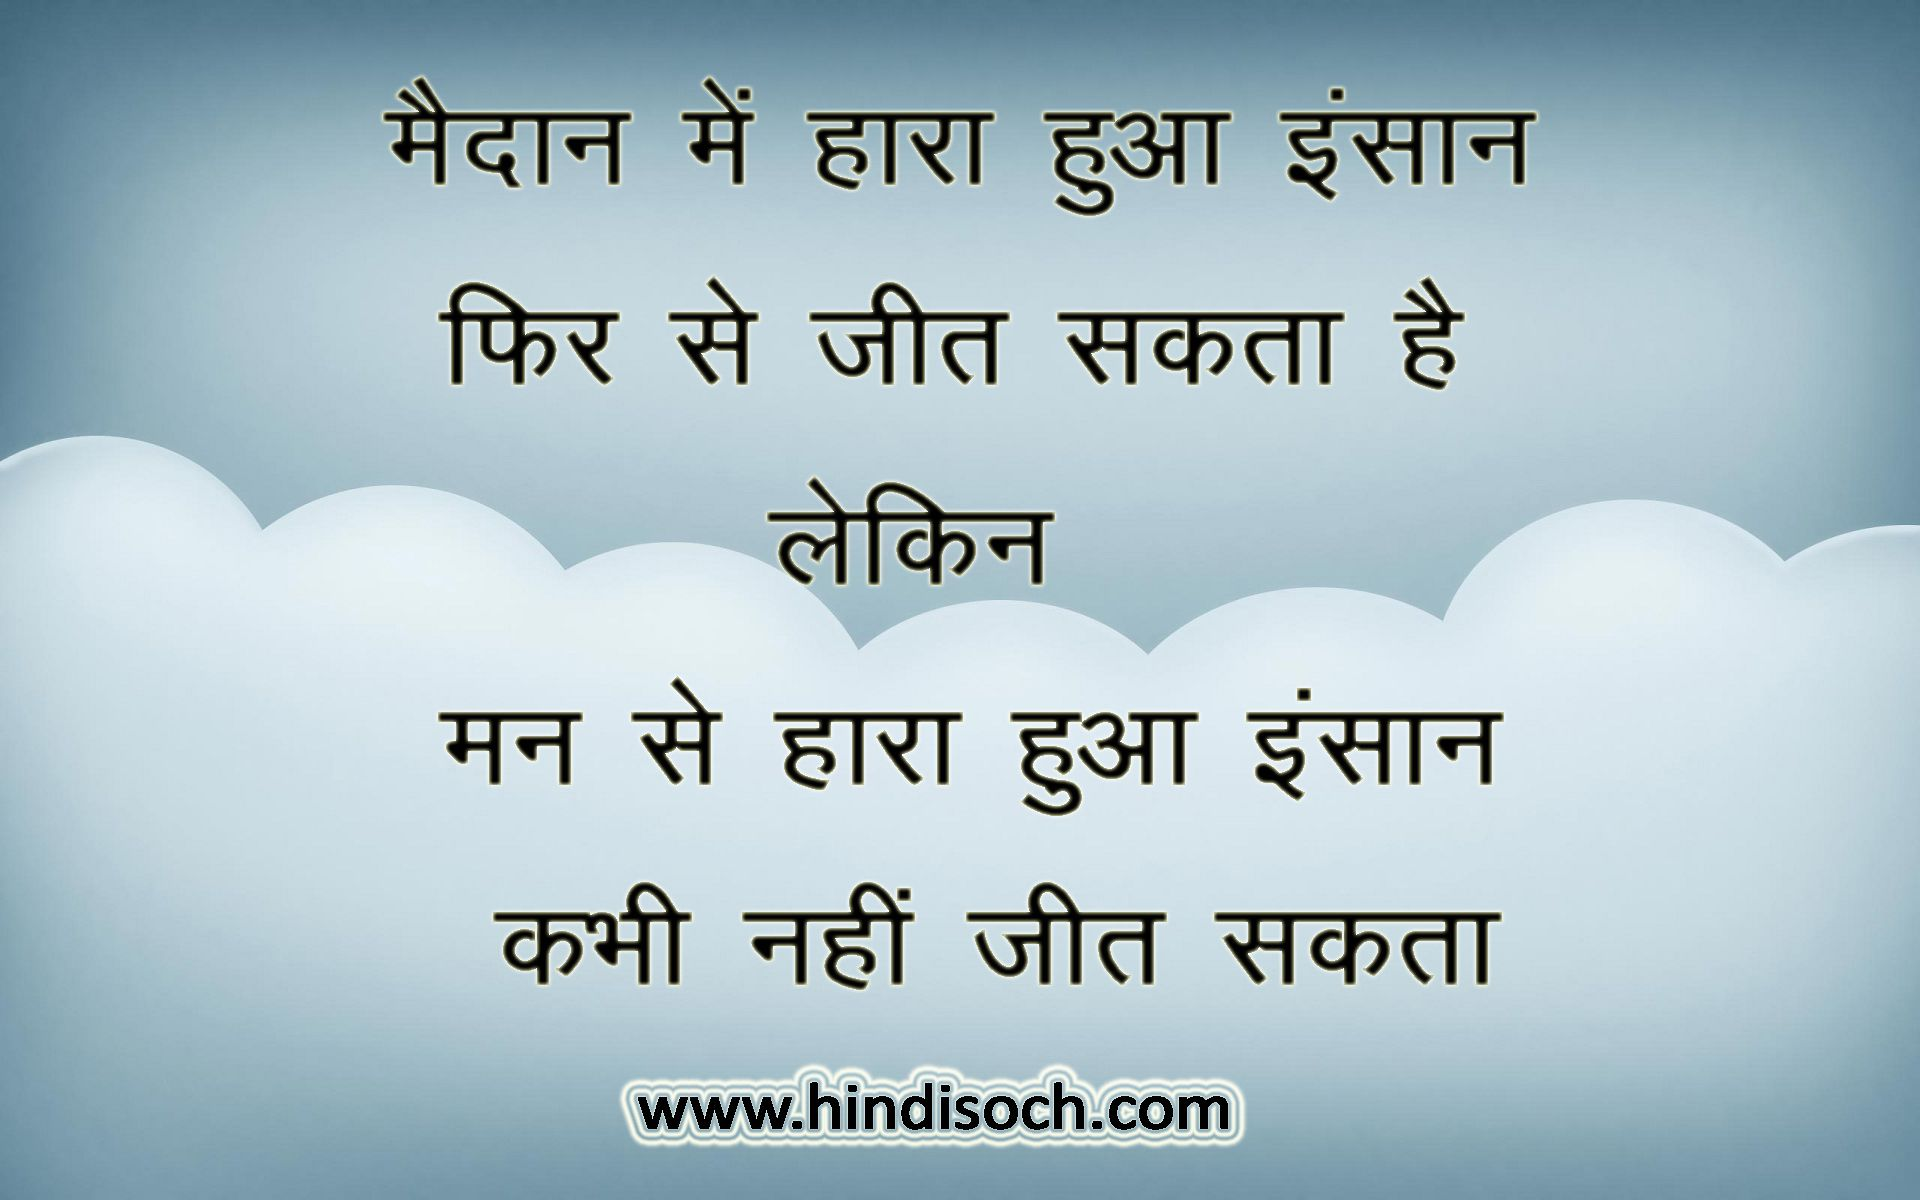 Life Motivation Quotes 50 Life Inspirational Motivational Quotes In Hindi With Images